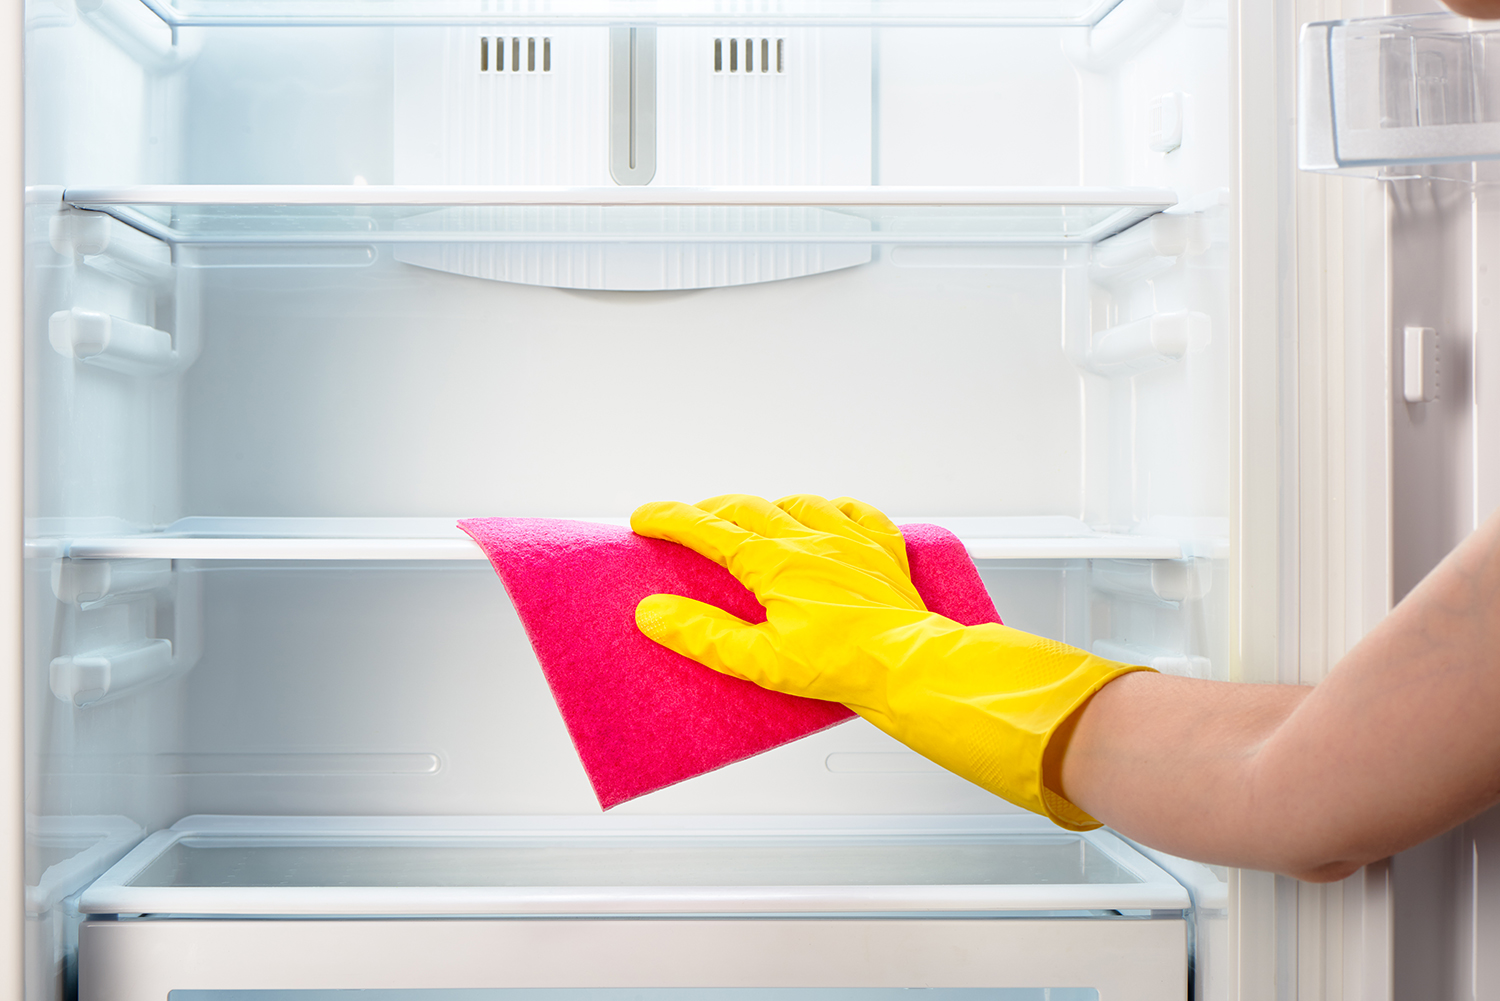 The 5 Best Cleaning Tips We Learned in 2017